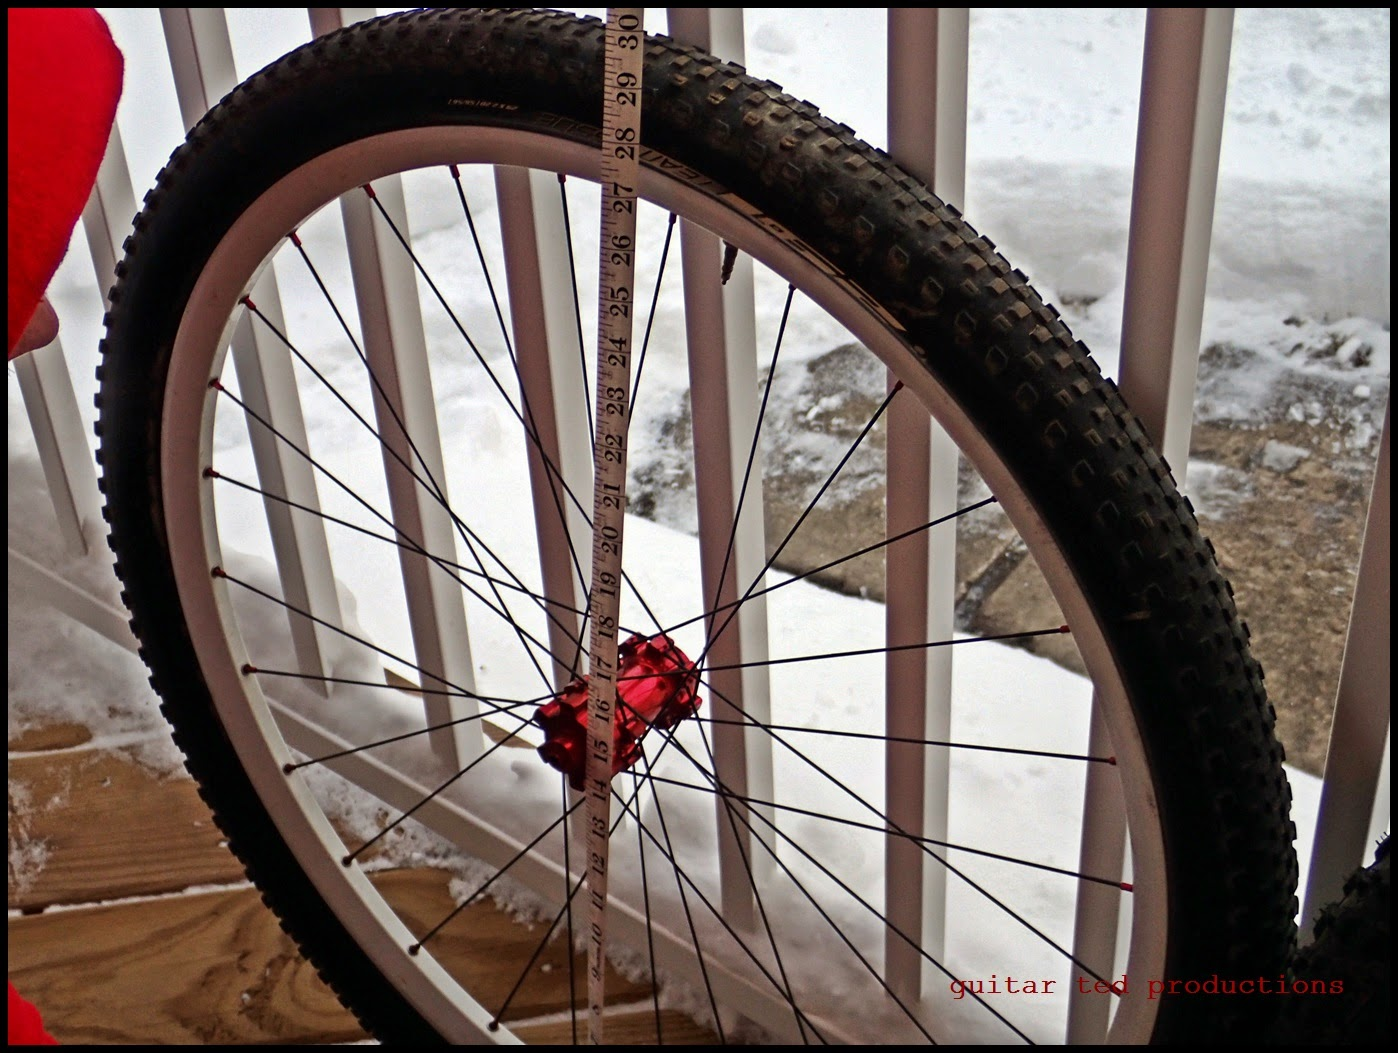 Guitar Ted Productions Your Fat Bike Is Really A 29 Er Or Bigger